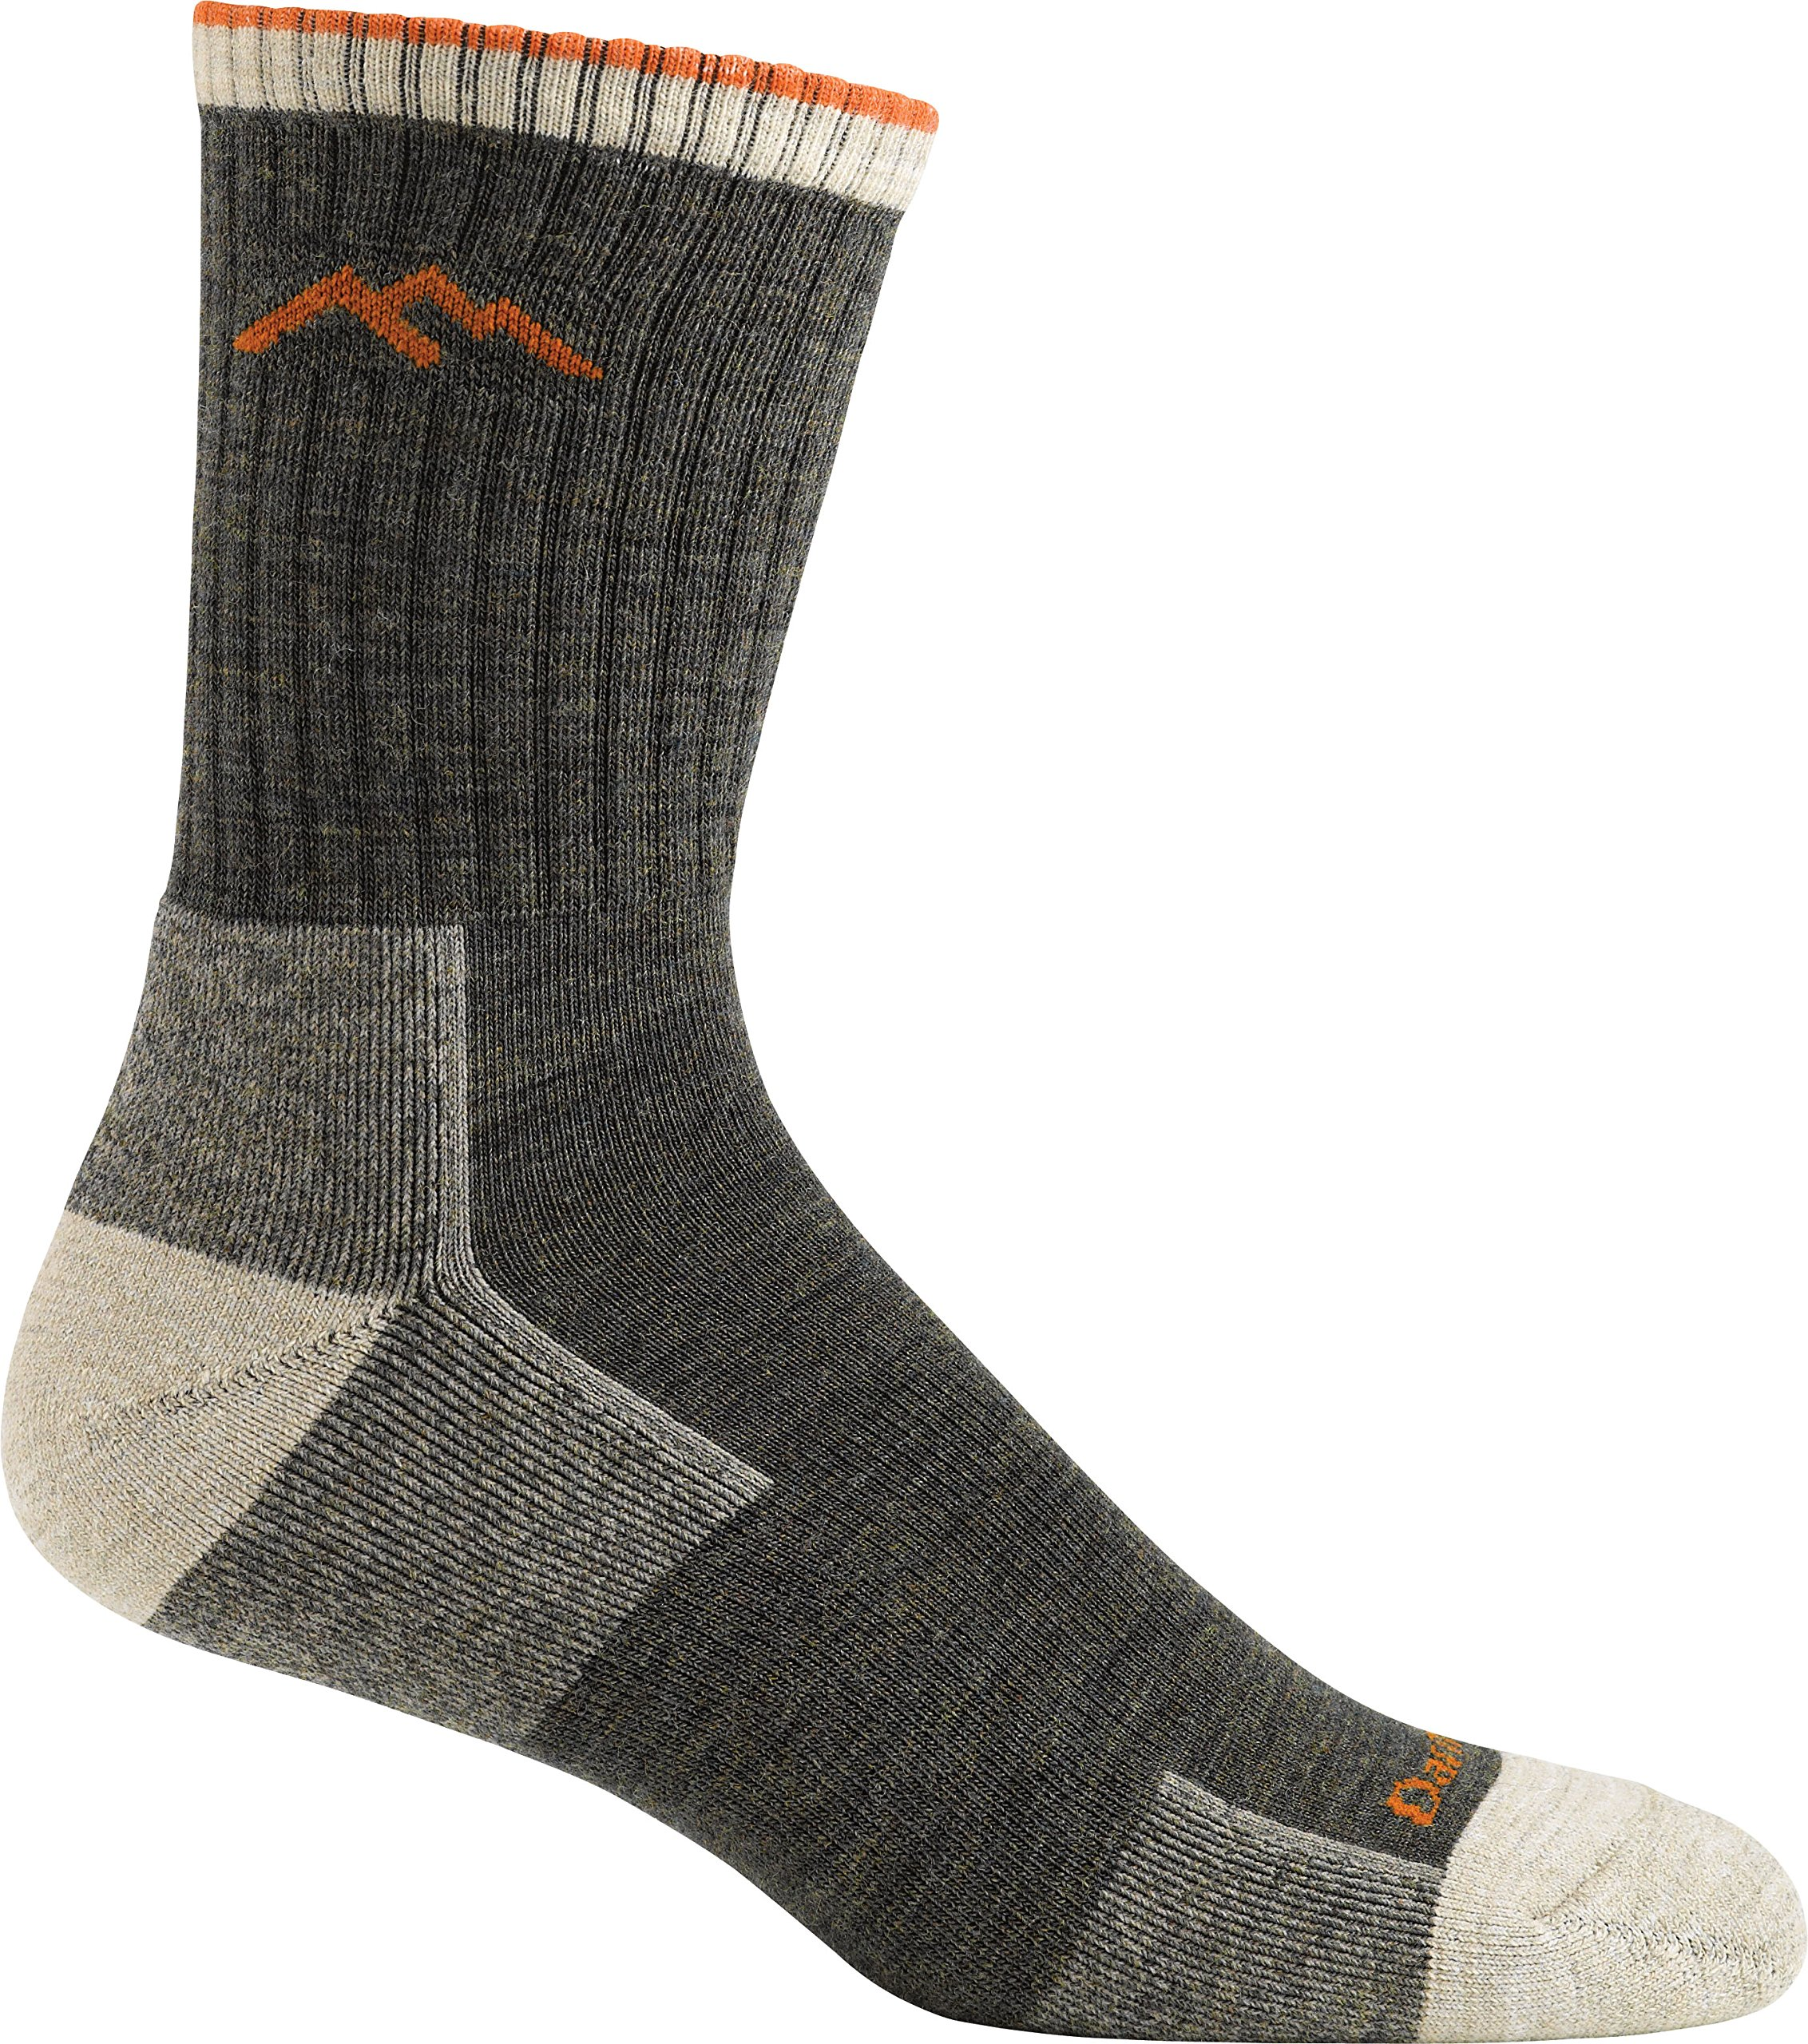 Darn Tough Vermont Micro Crew Sock Cushion 1466 Athletic Socks,Olive,XL